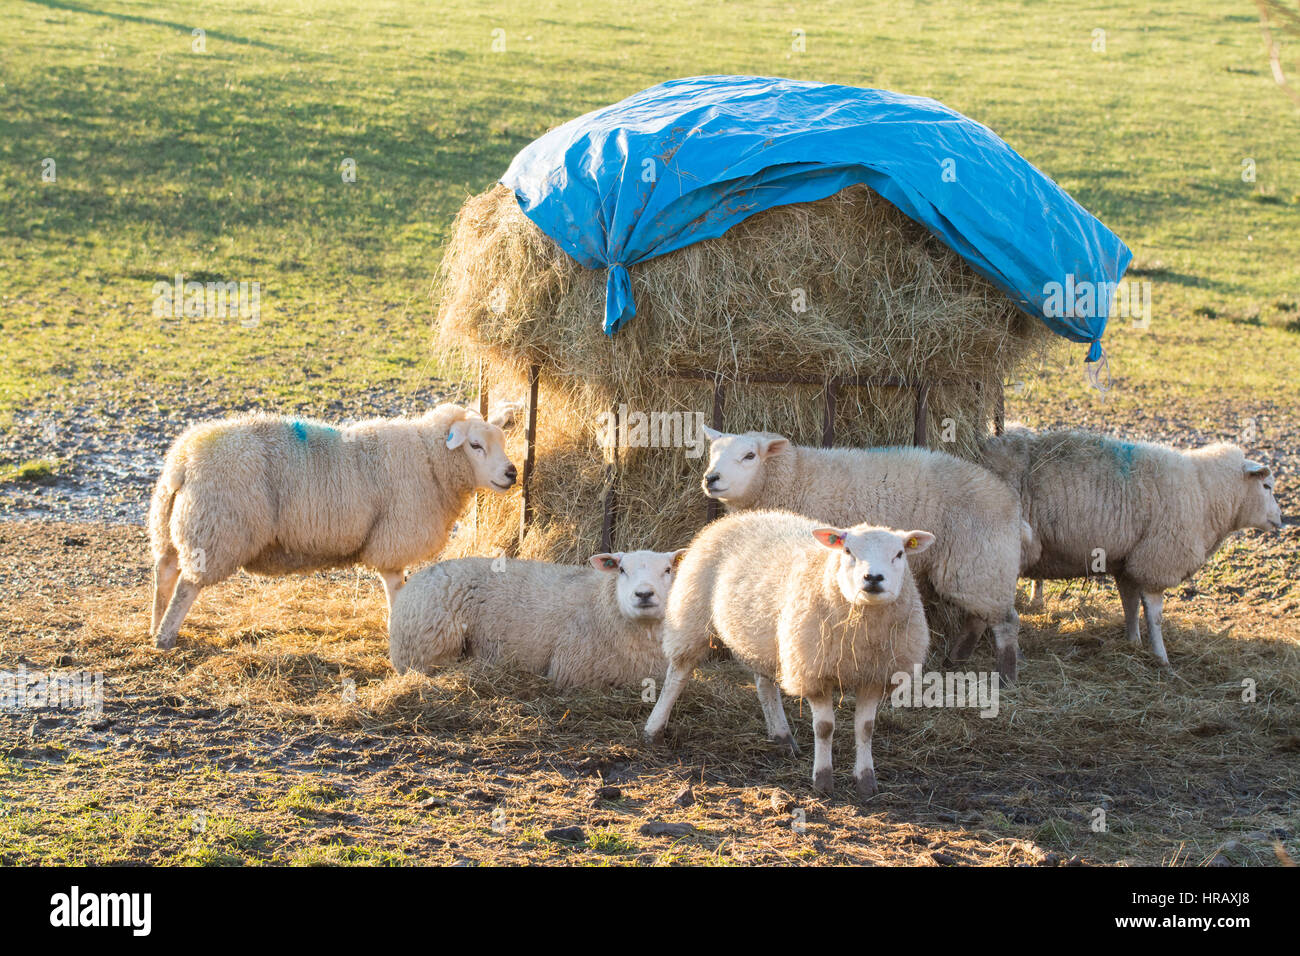 Stirlingshire, Scotland, UK. 28th Feb, 2017. UK weather - sheep enjoying late afternoon sunshine on a beautiful - Stock Image